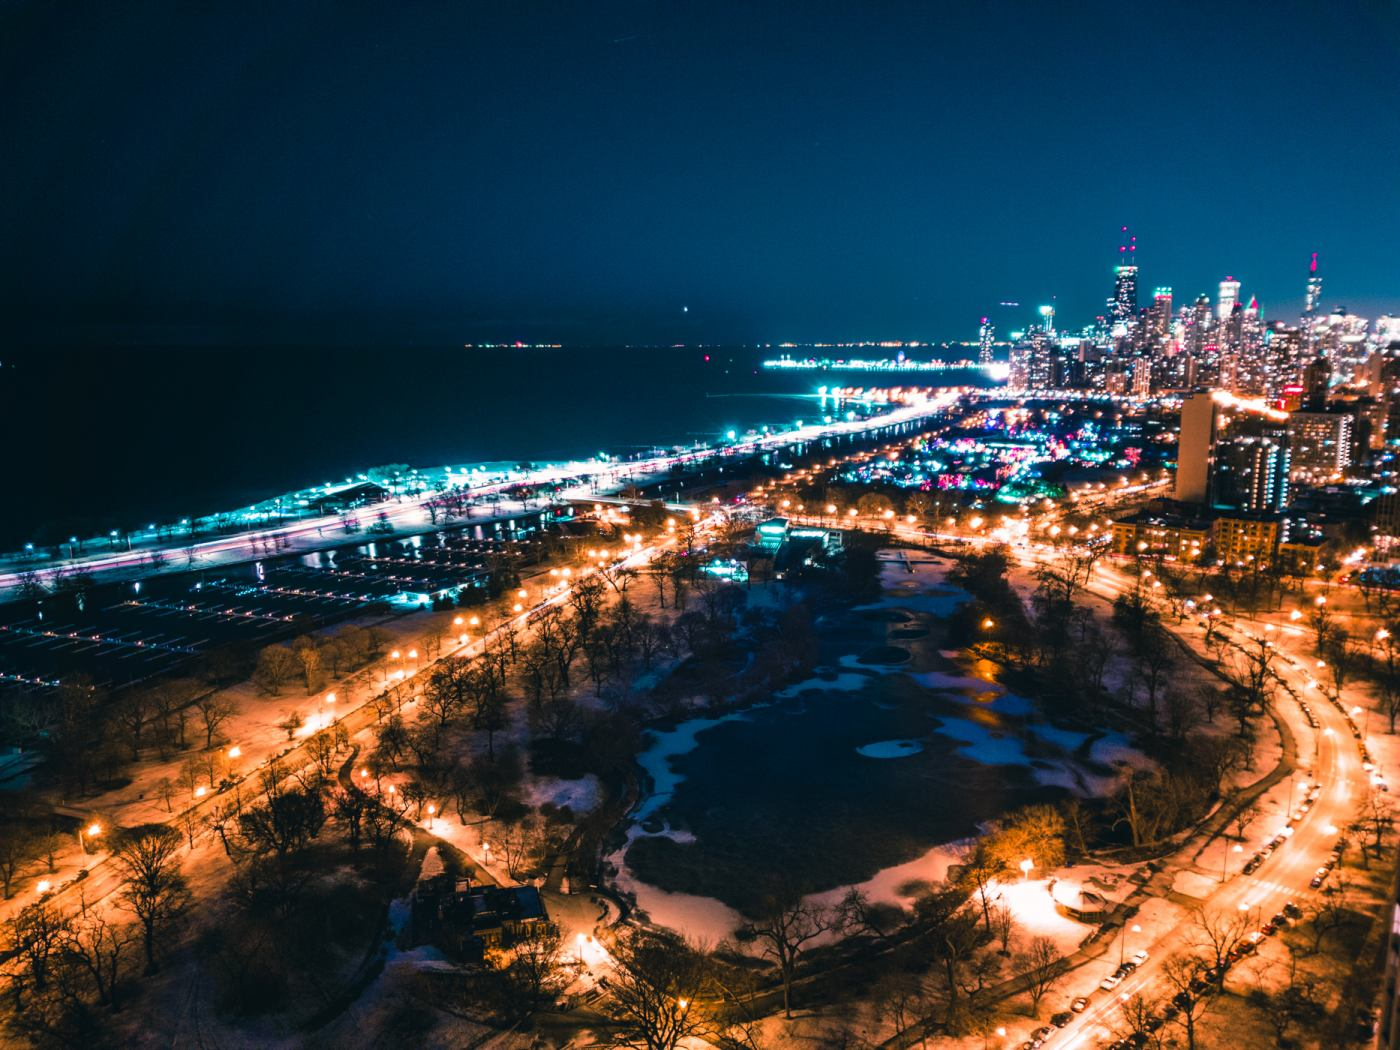 Lincoln Park and Downtown Chicago. Griffith Observatory. Samsung Galaxy S8. 8s, f/1.7, ISO 50